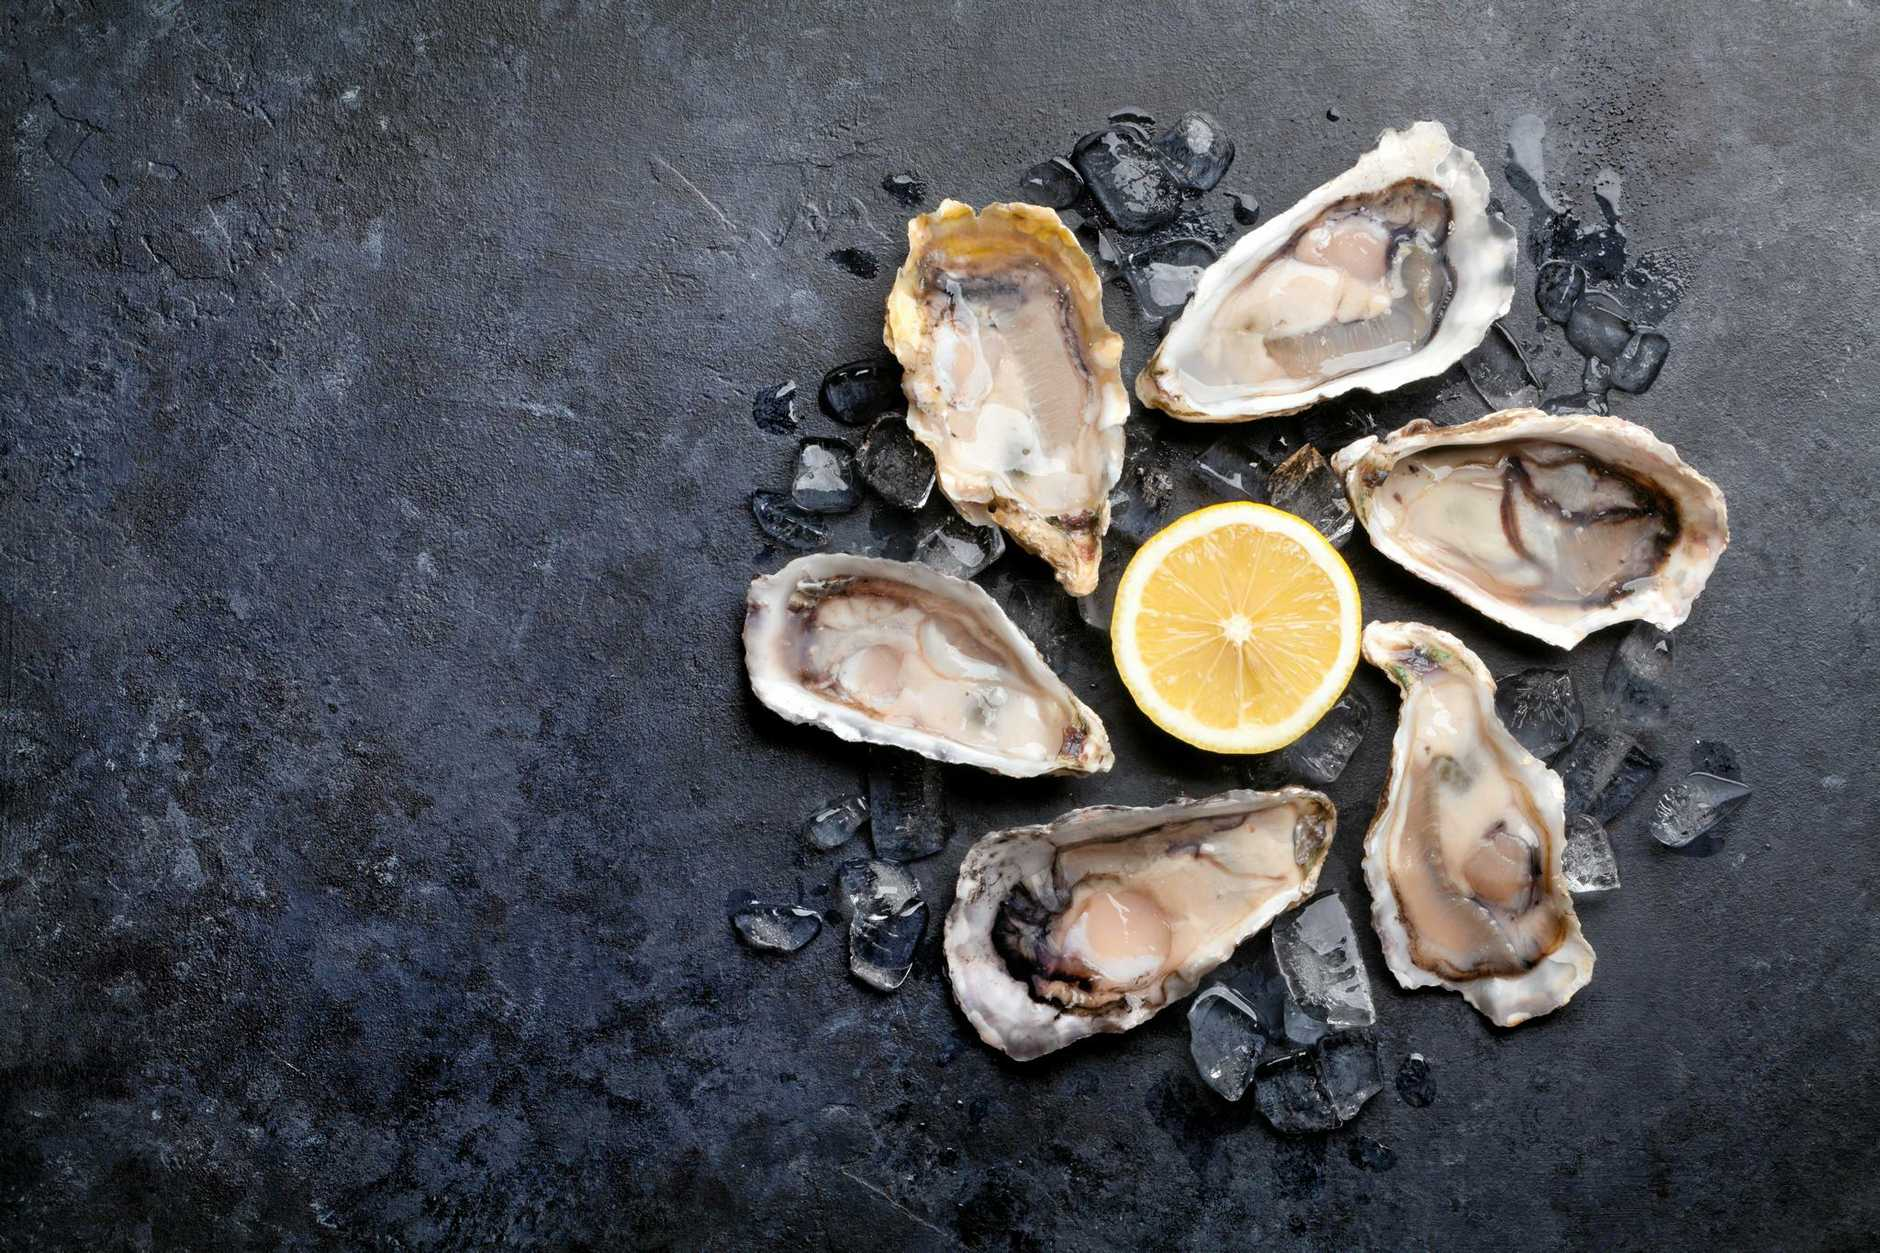 Oysters kilpatrick are sure to please most tastebuds.